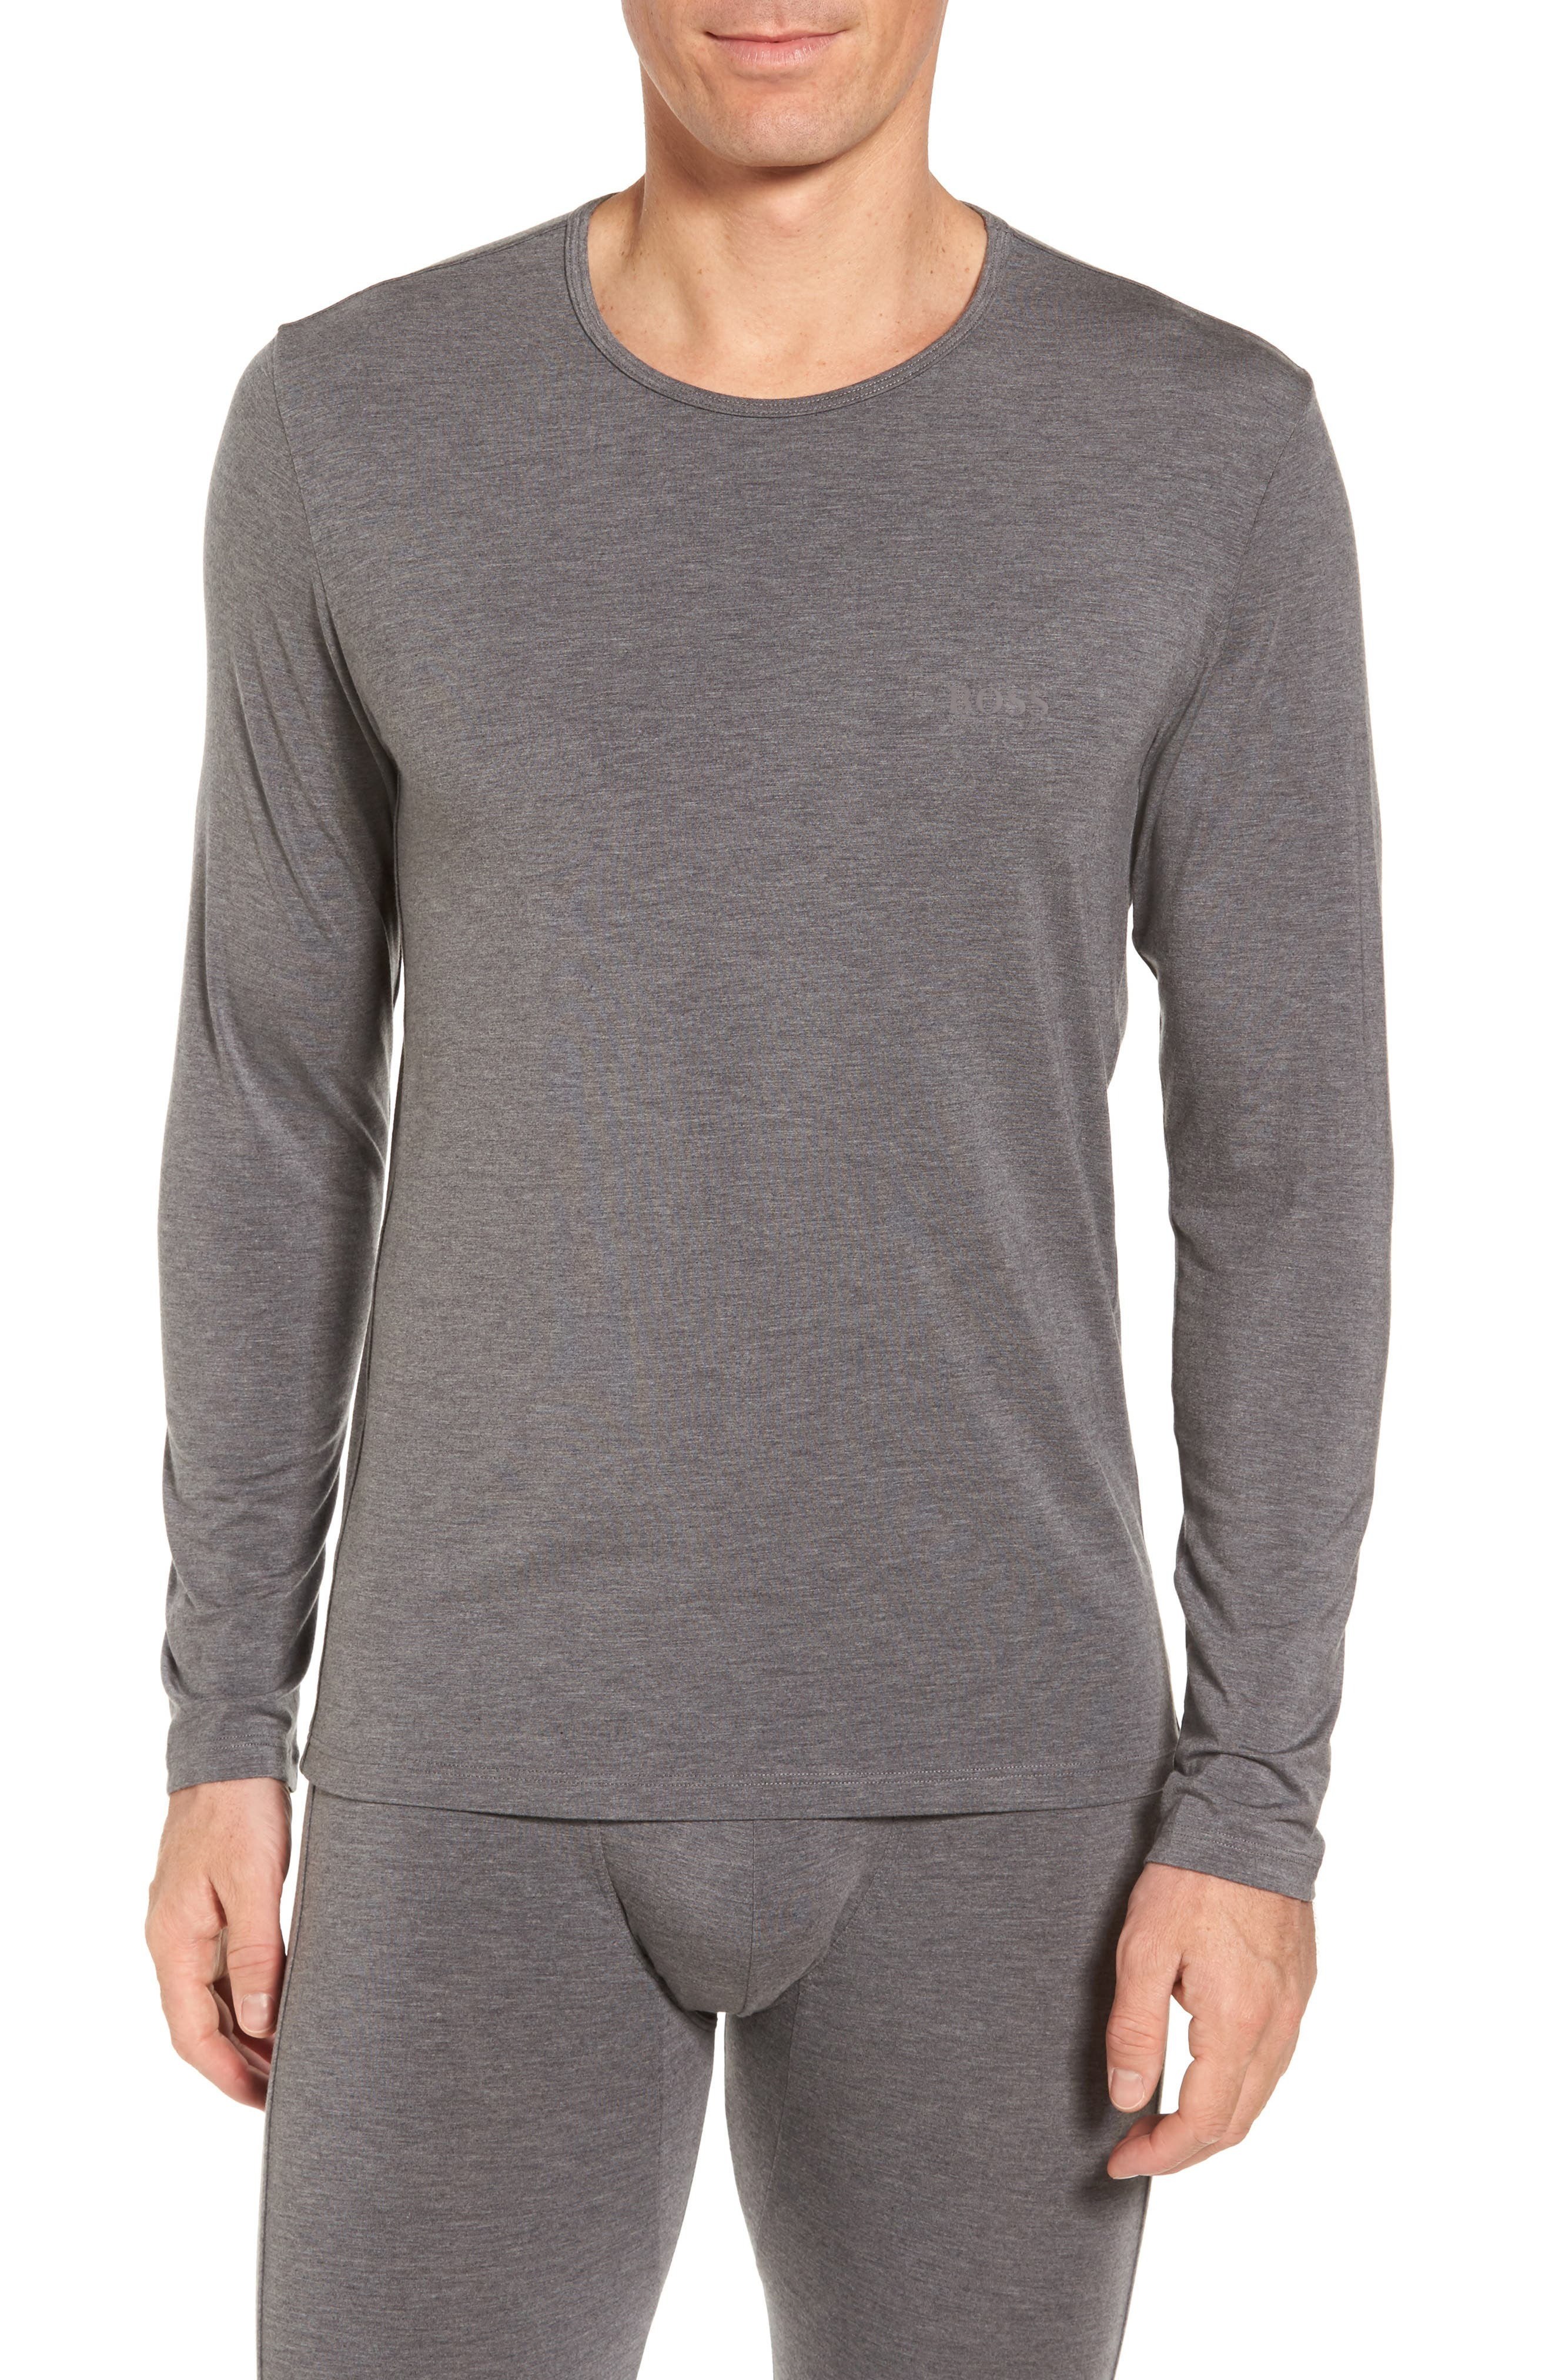 Thermal Long Sleeve T-Shirt,                             Main thumbnail 1, color,                             Charcoal